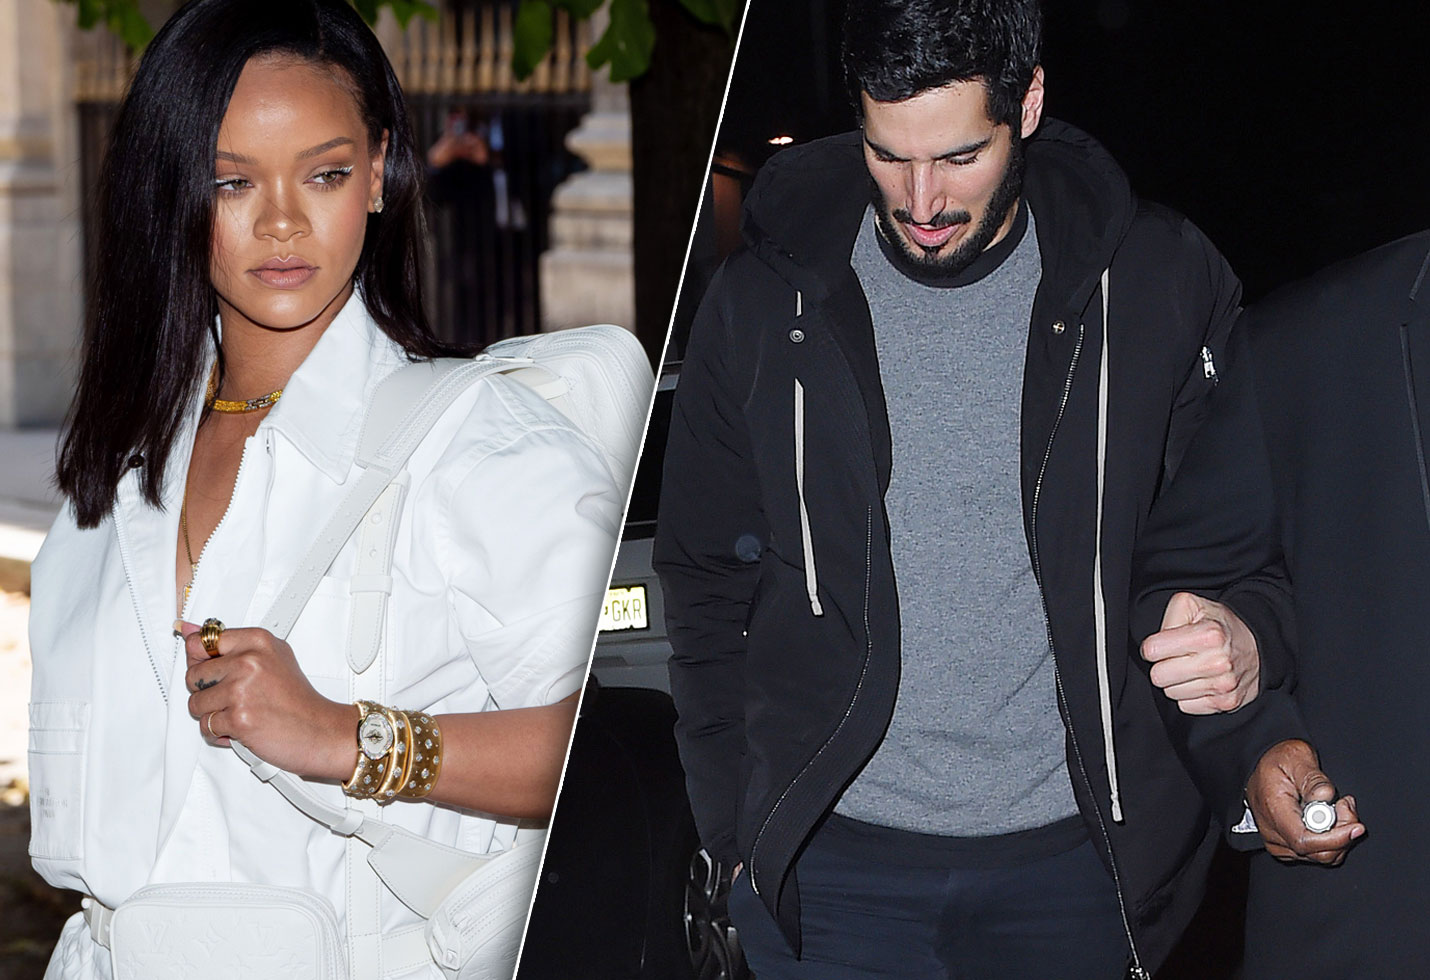 rihanna-and-hassan-jameels-long-distance-relationship-has-only-been-making-their-love-stronger-heres-why